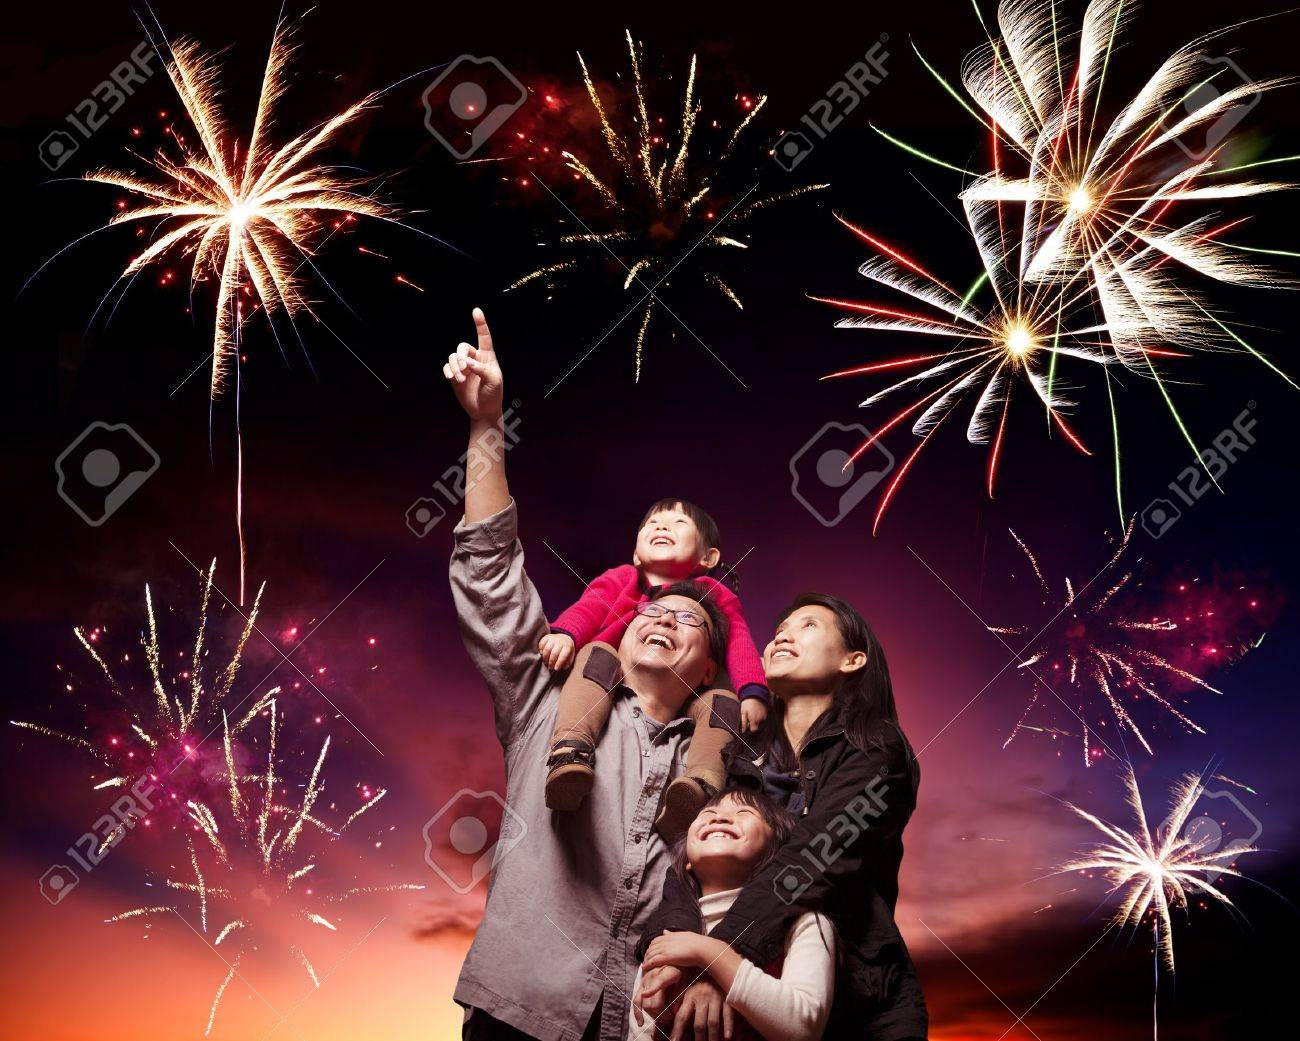 happy family looking fireworks in the evening sky stock photo